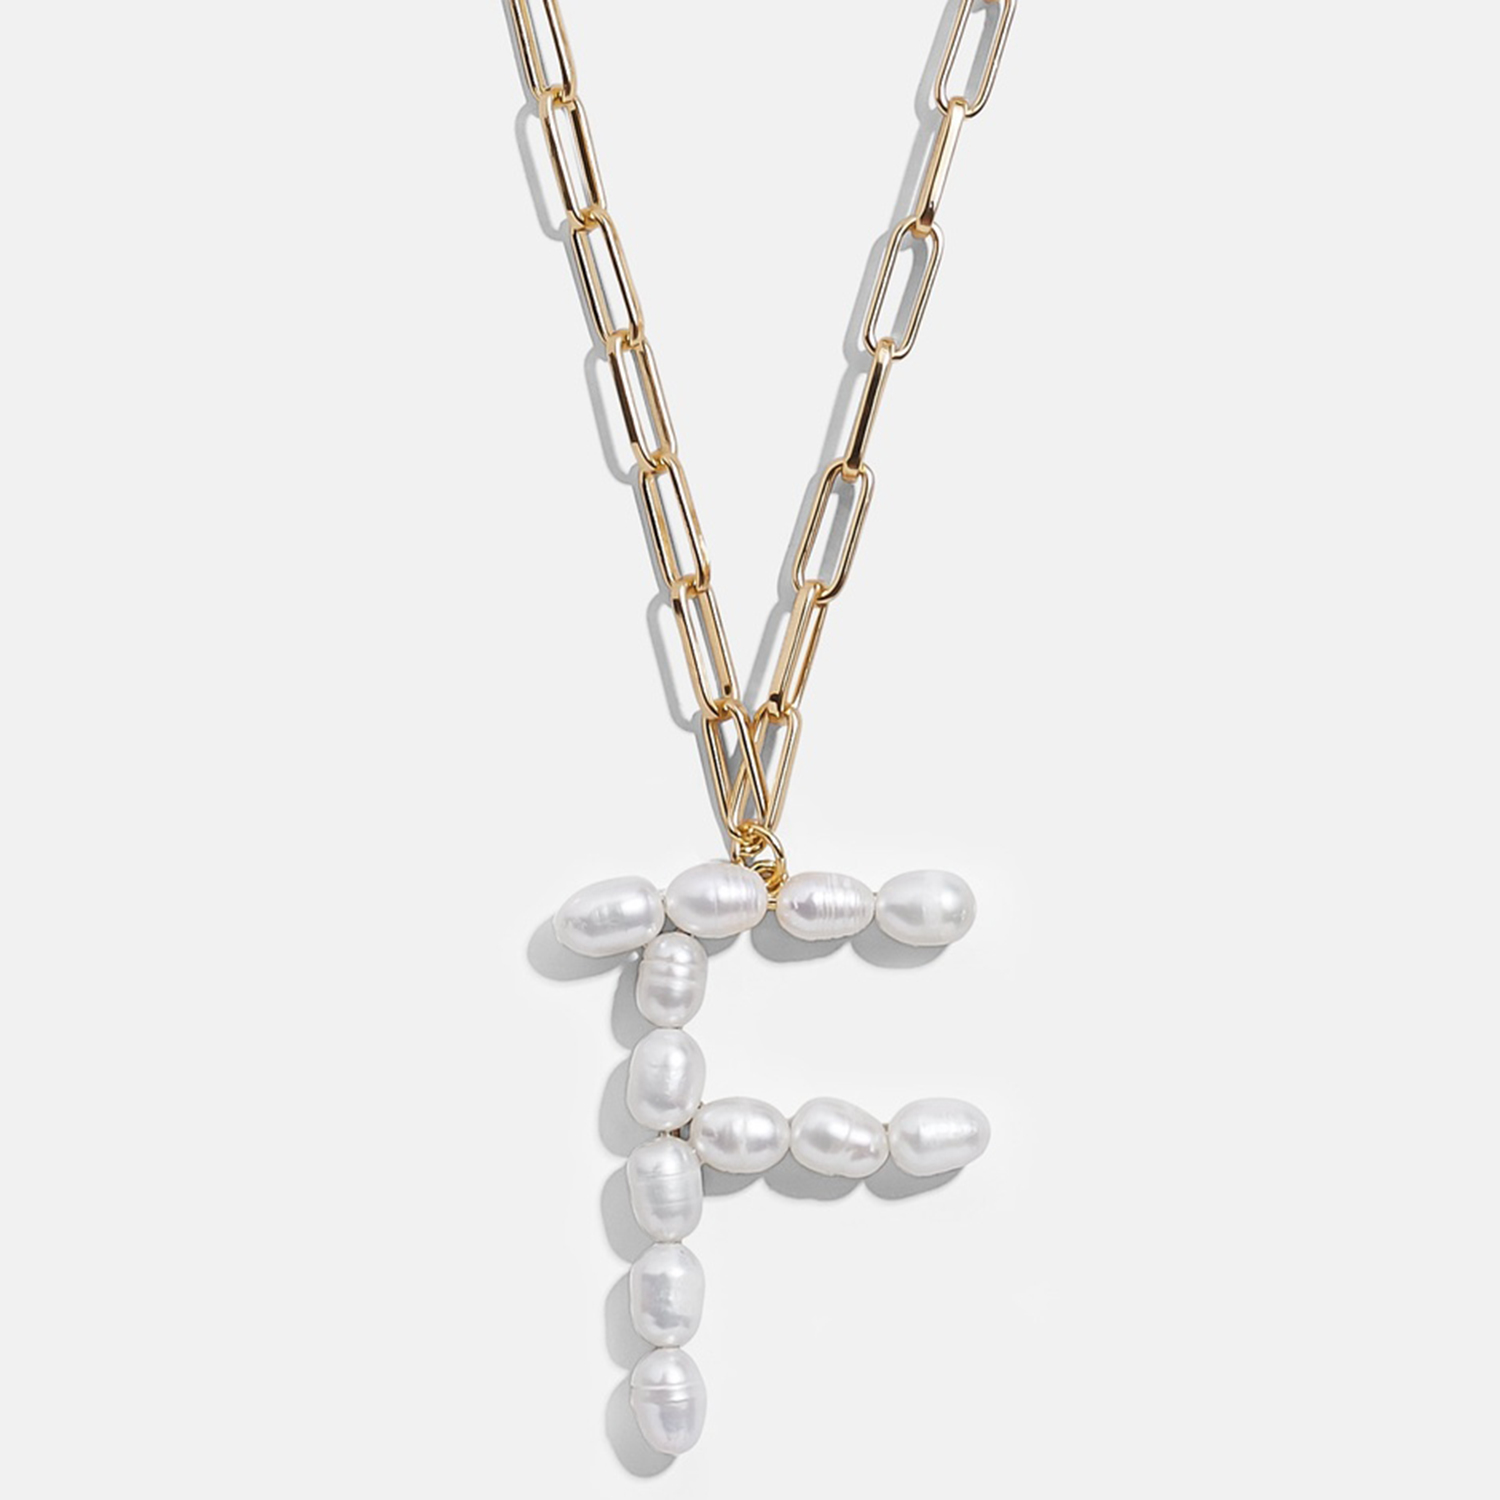 Baublebar Jewelry INITIAL NECKLACE